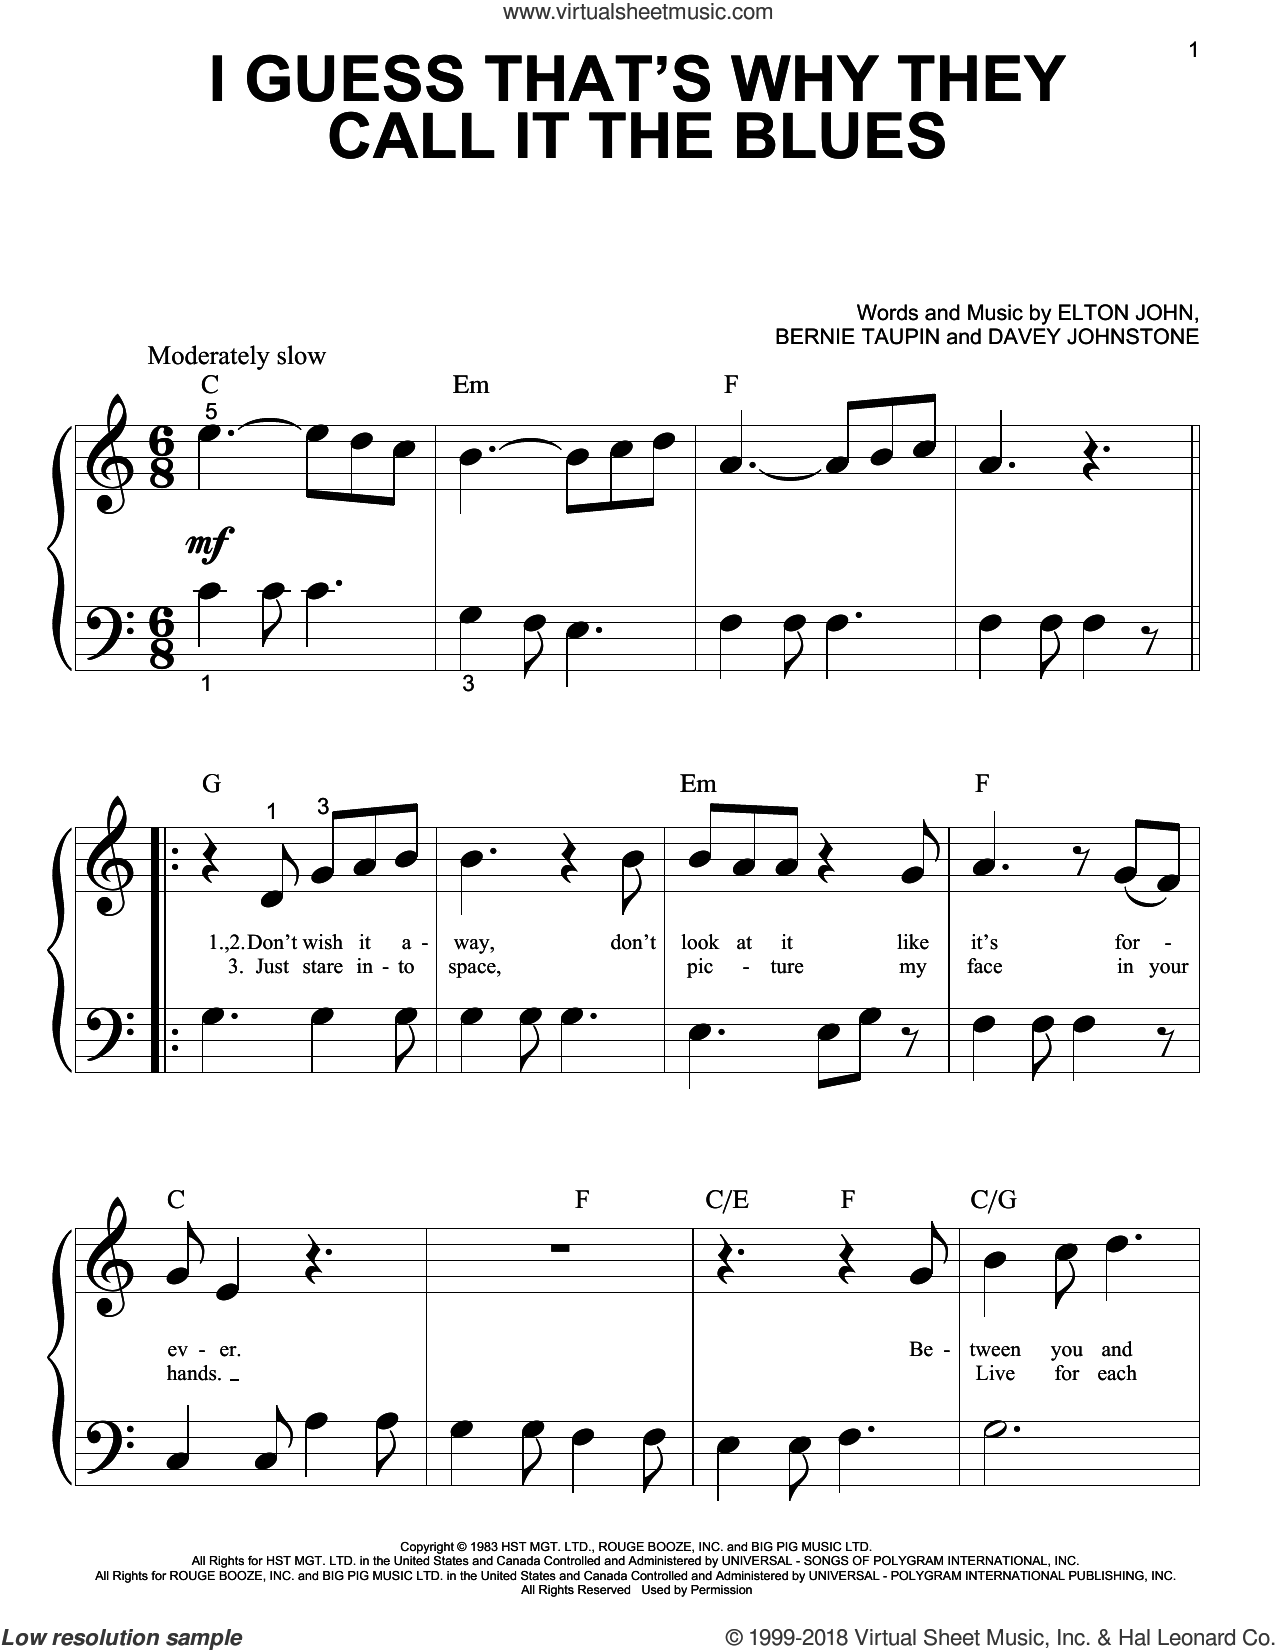 I Guess That's Why They Call It The Blues sheet music for piano solo (big note book) by Davey Johnstone, Bernie Taupin and Elton John. Score Image Preview.